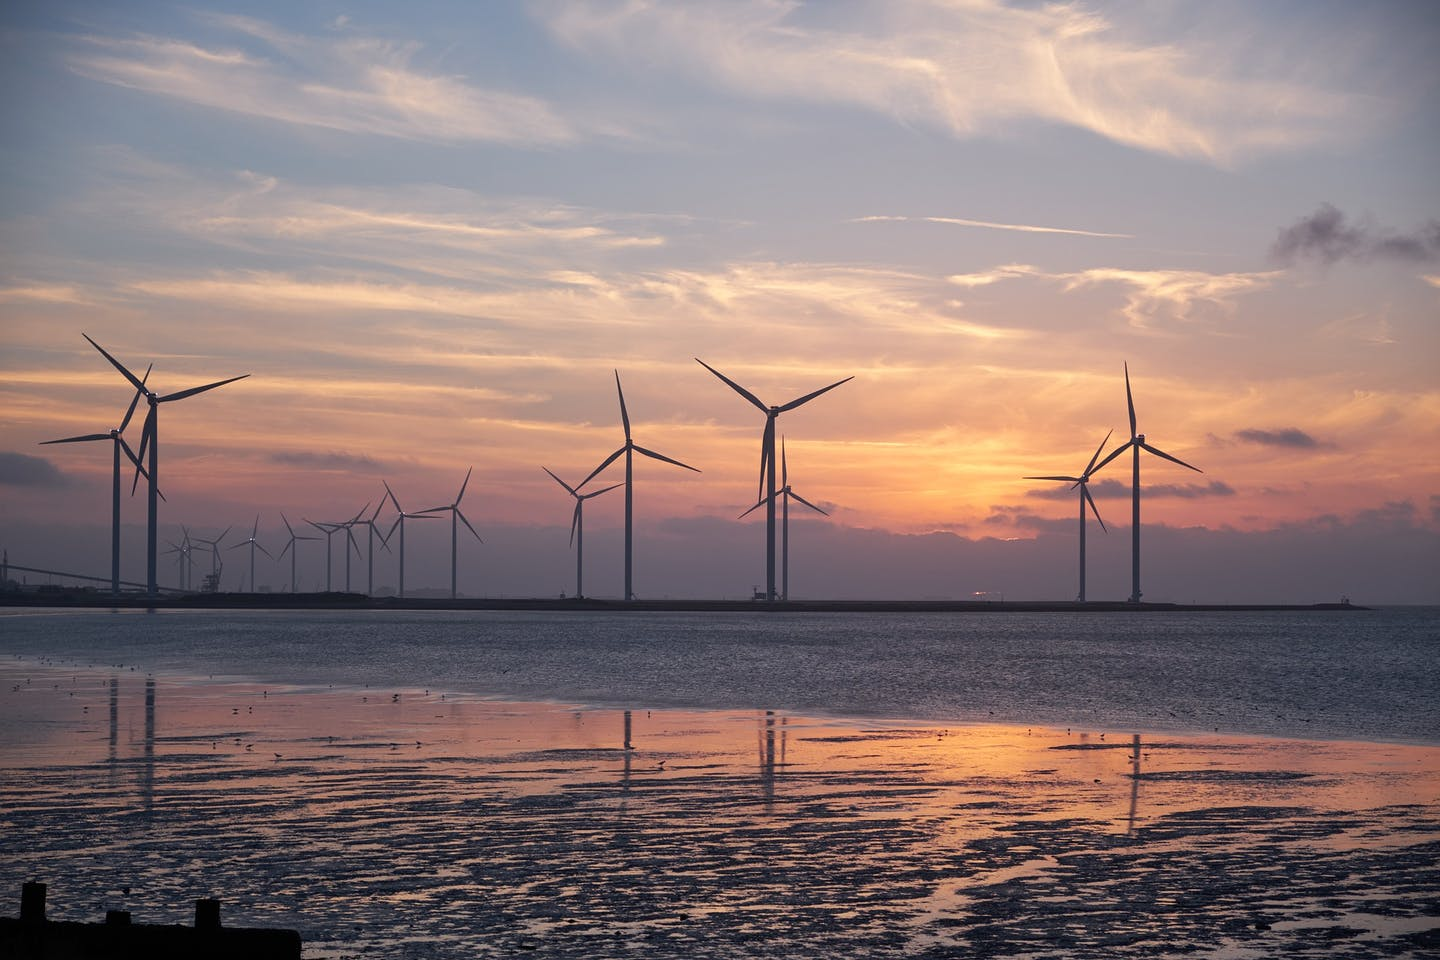 European companies have played a key role in developing Asian offshore wind projects.